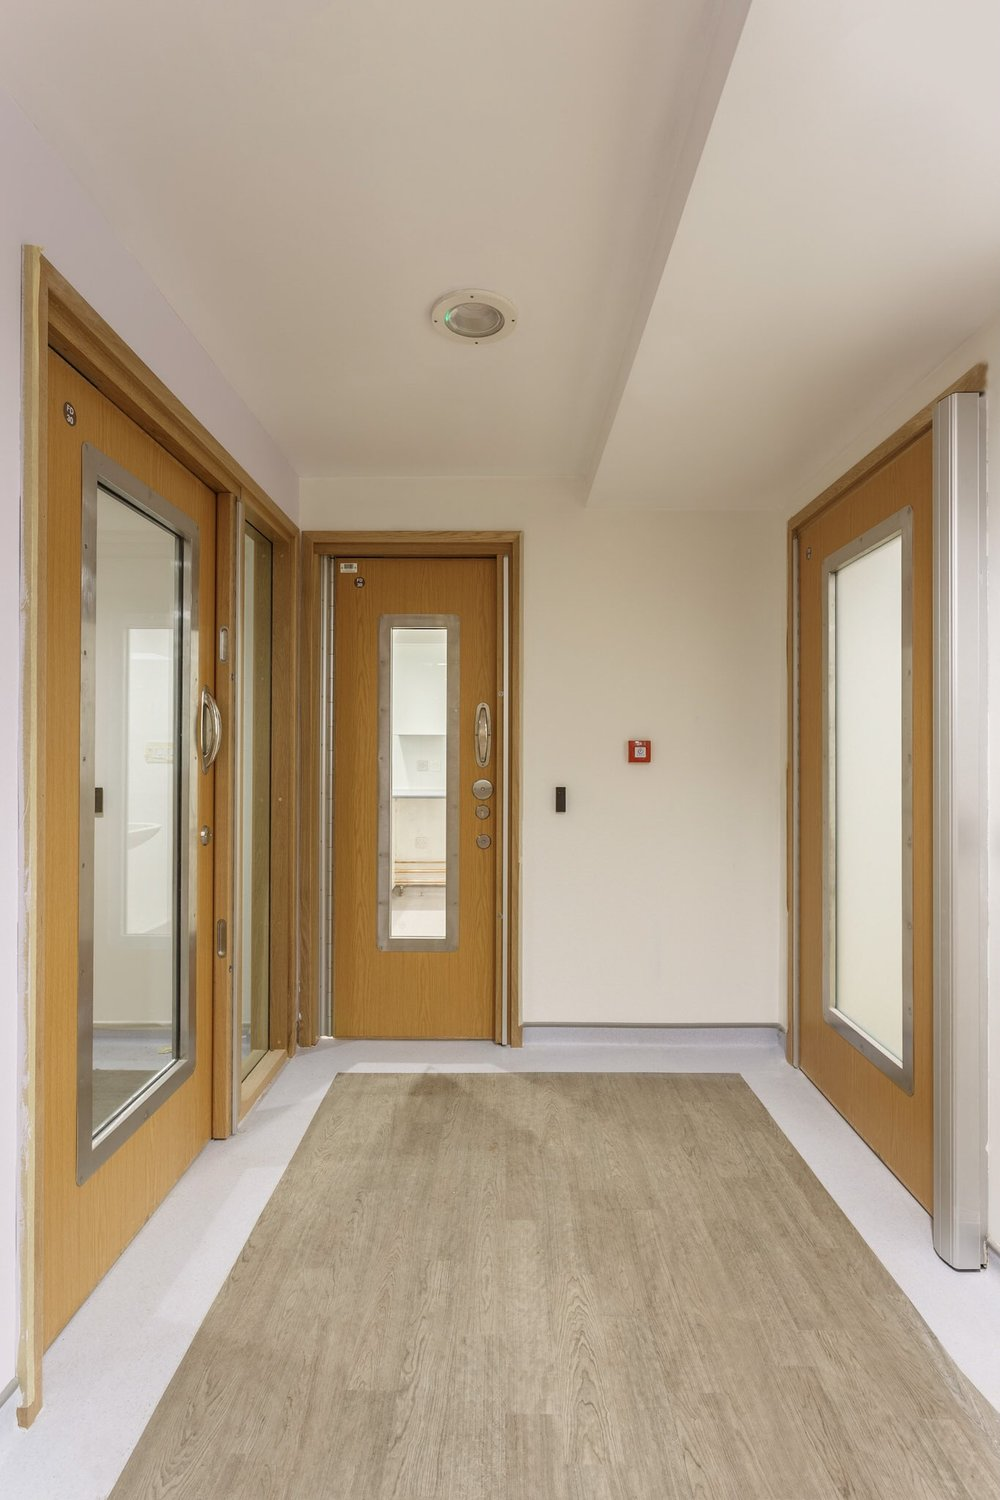 Anti-ligature doors in a hospital by Rick McEvoy Construction Product Photographer